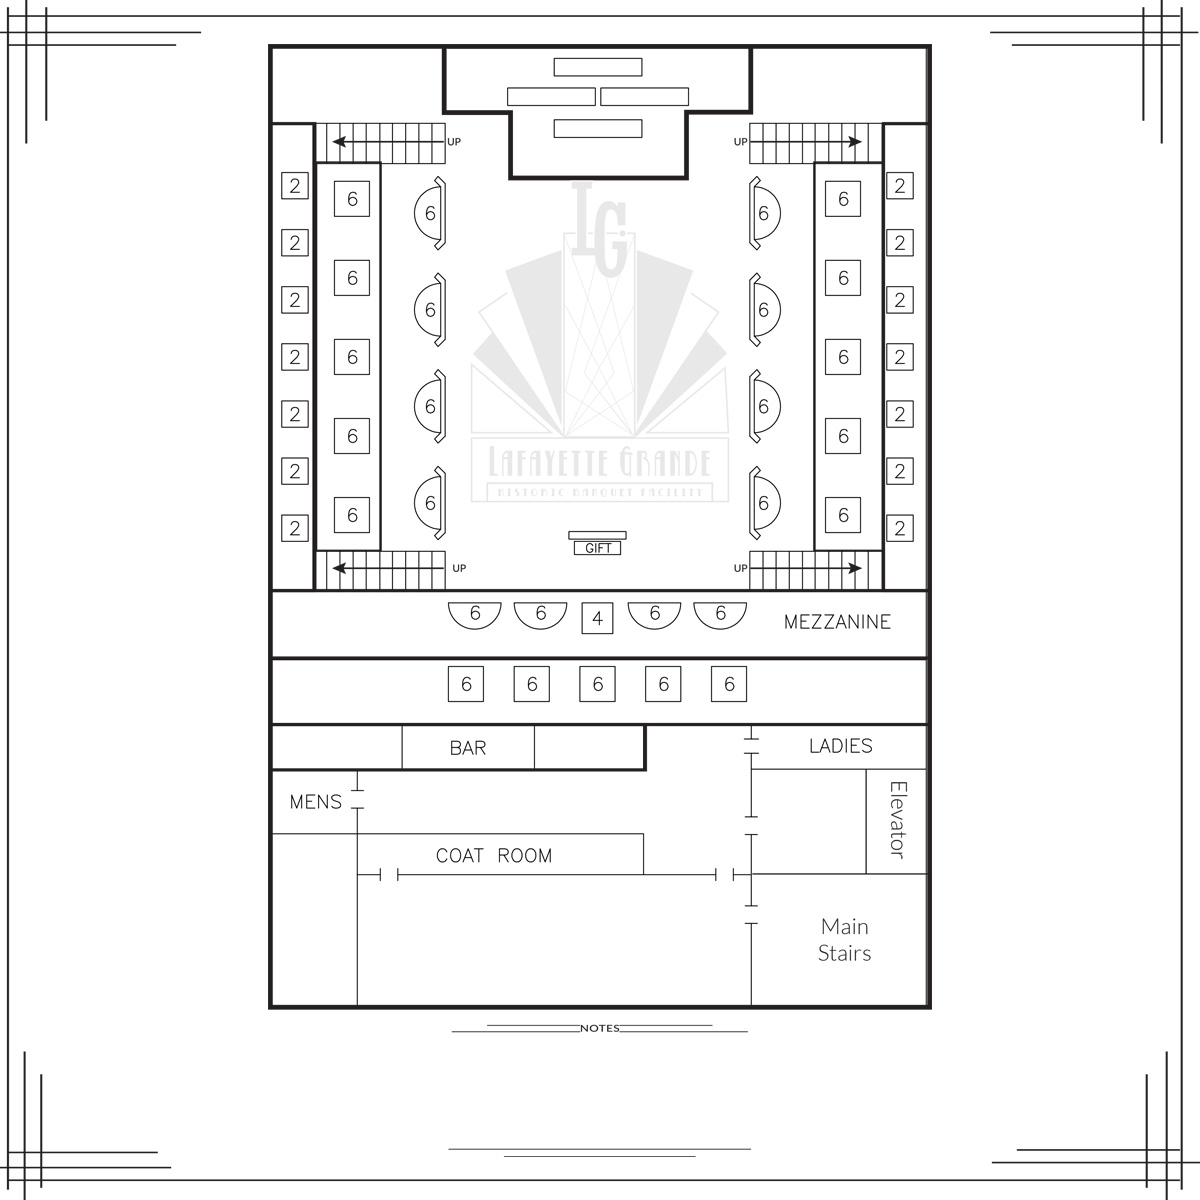 crystal ballroom floorplan